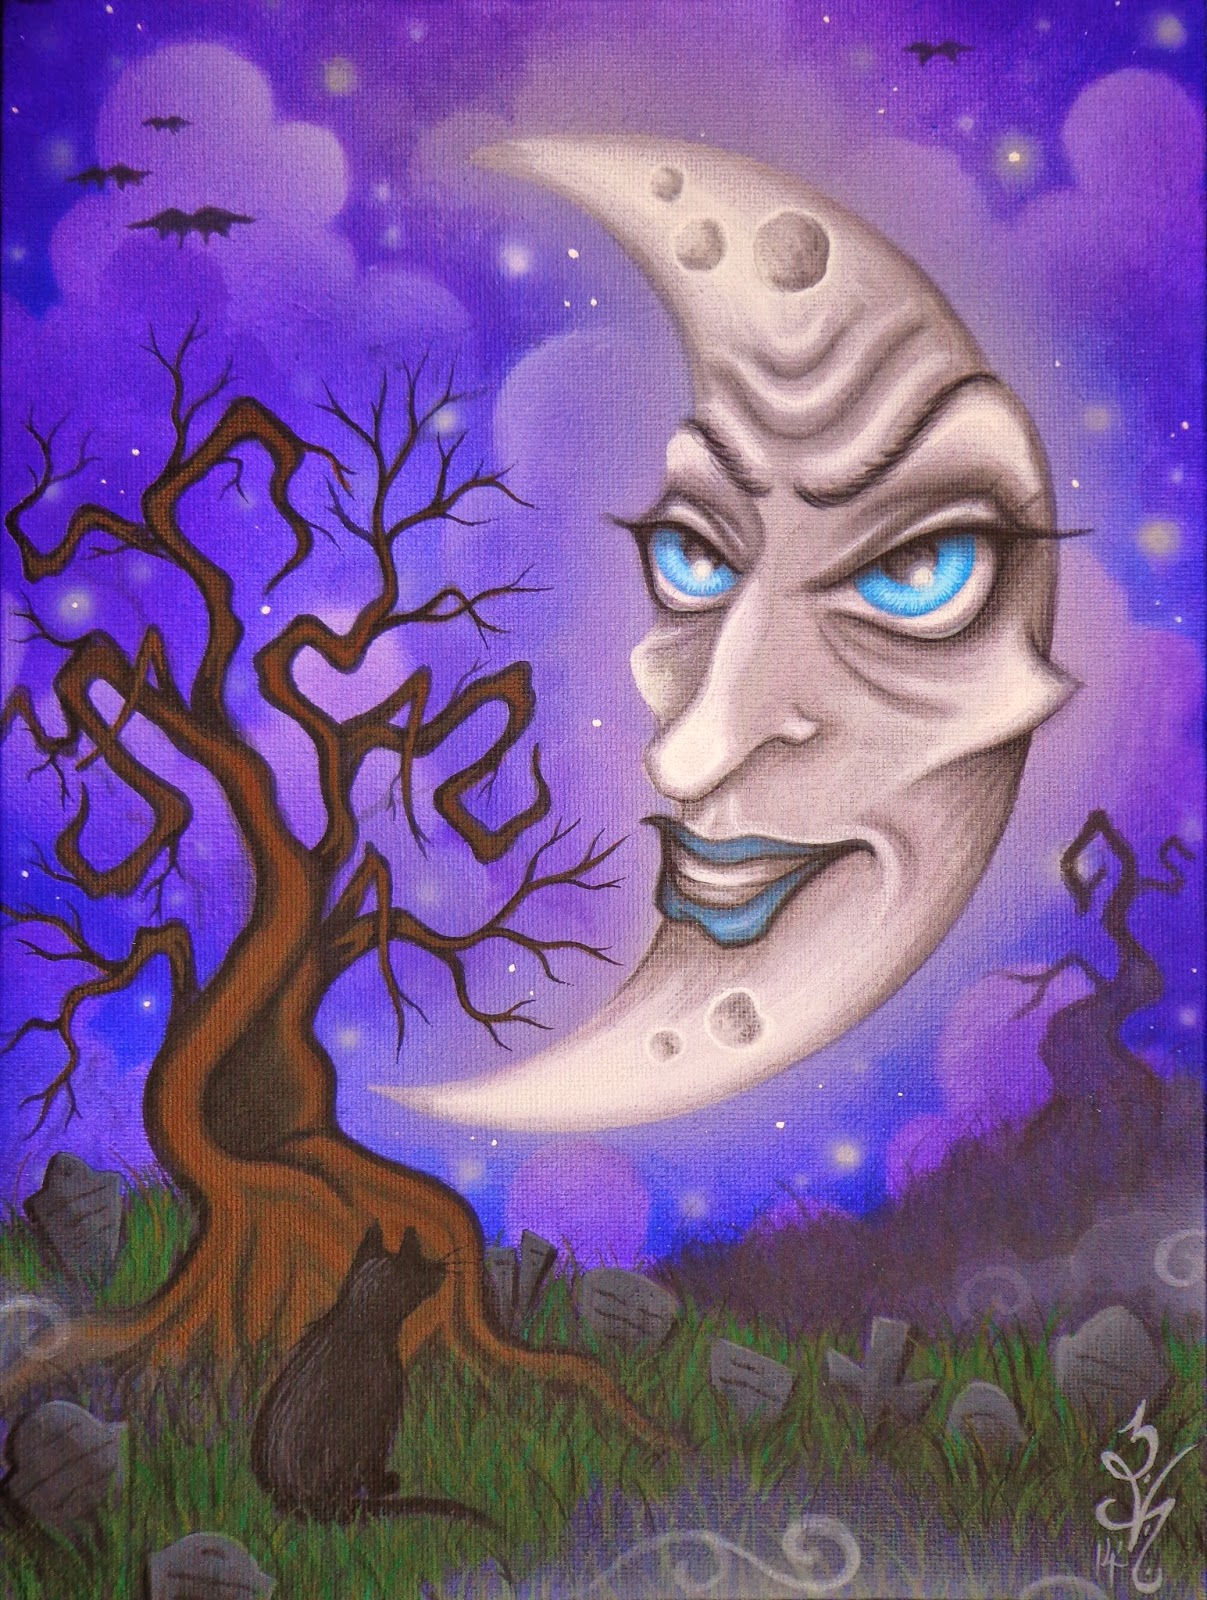 https://www.etsy.com/listing/202367177/original-fantasy-lowbrow-big-eye-face?ref=shop_home_active_5